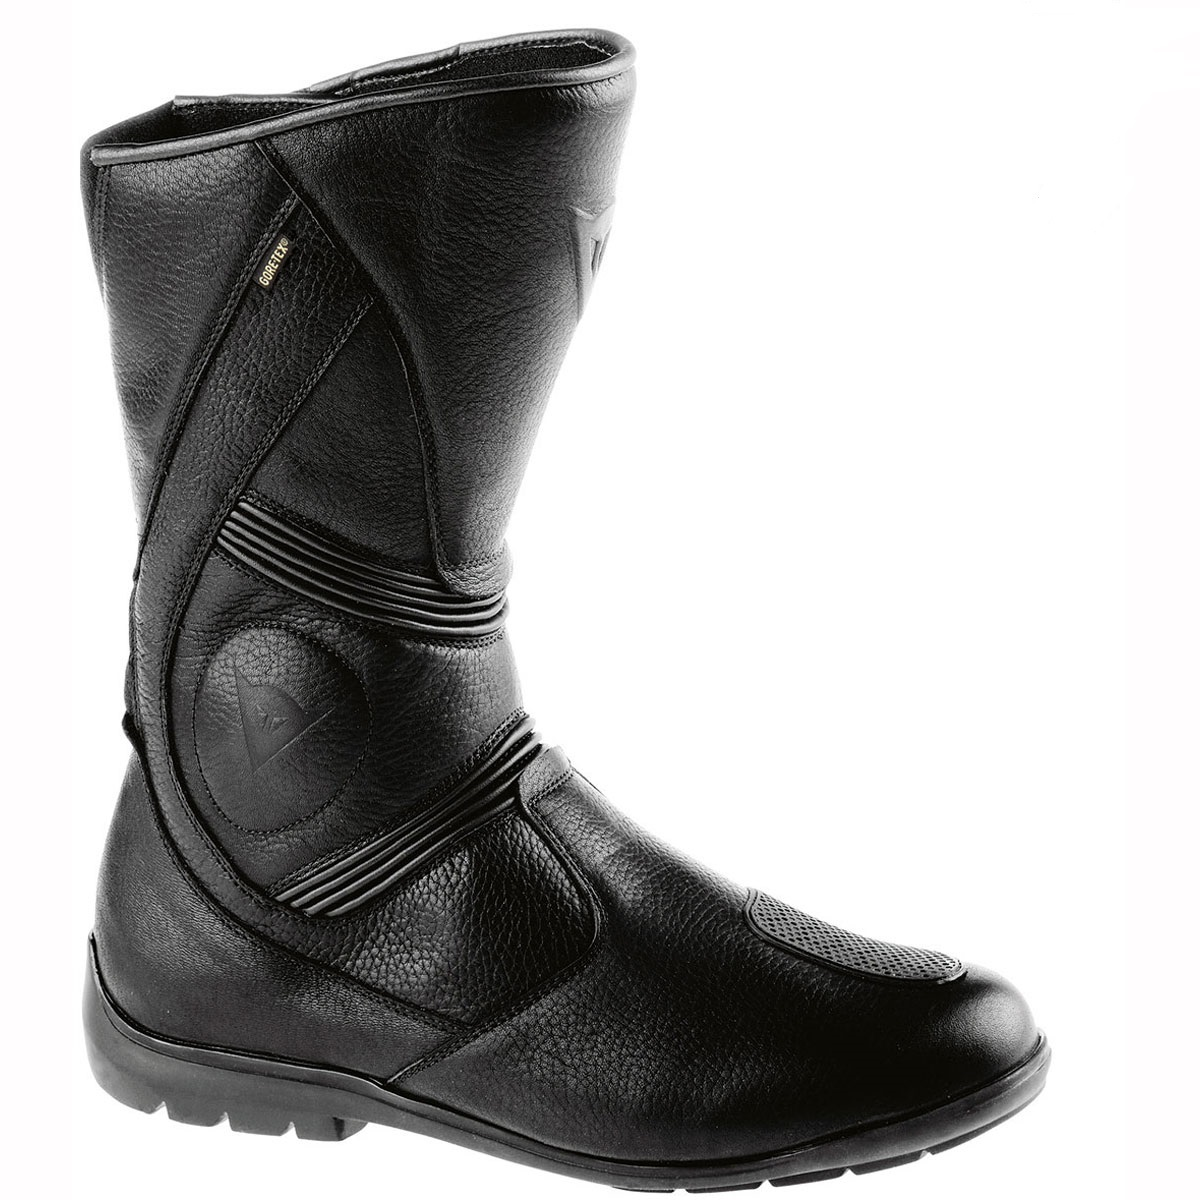 Dainese Fulcrum boots